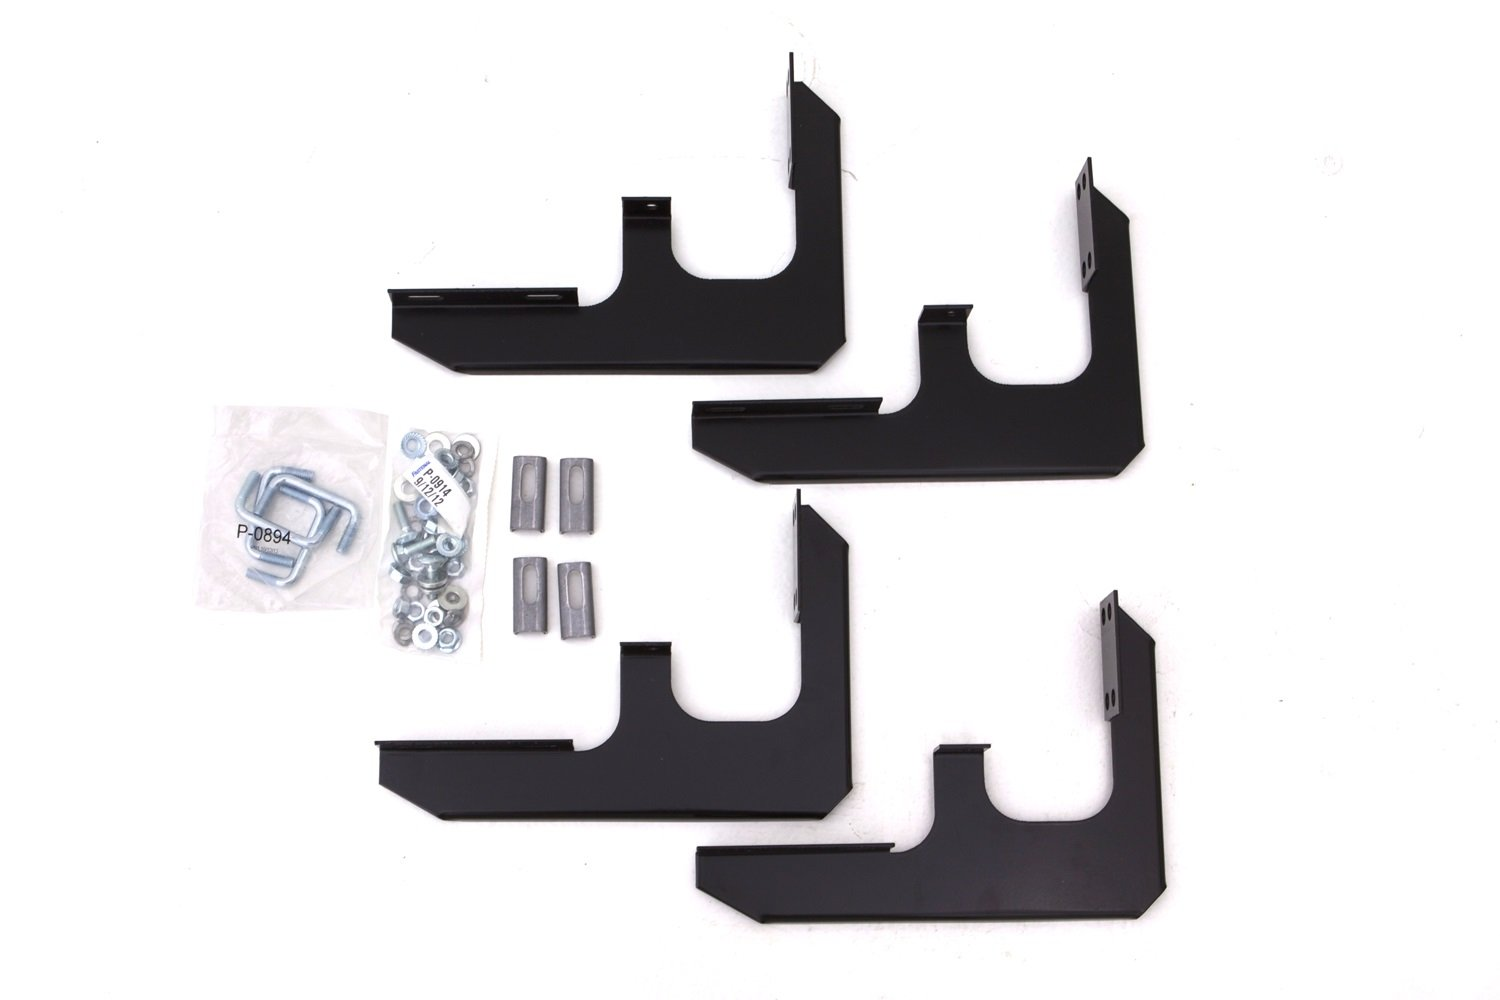 Excludes Denali Lund 318088 Tube Step Running Board Brackets for 2009-2016 Chevrolet Traverse; 2008-2016 GMC Acadia; 2017-2018 Acadia Limited